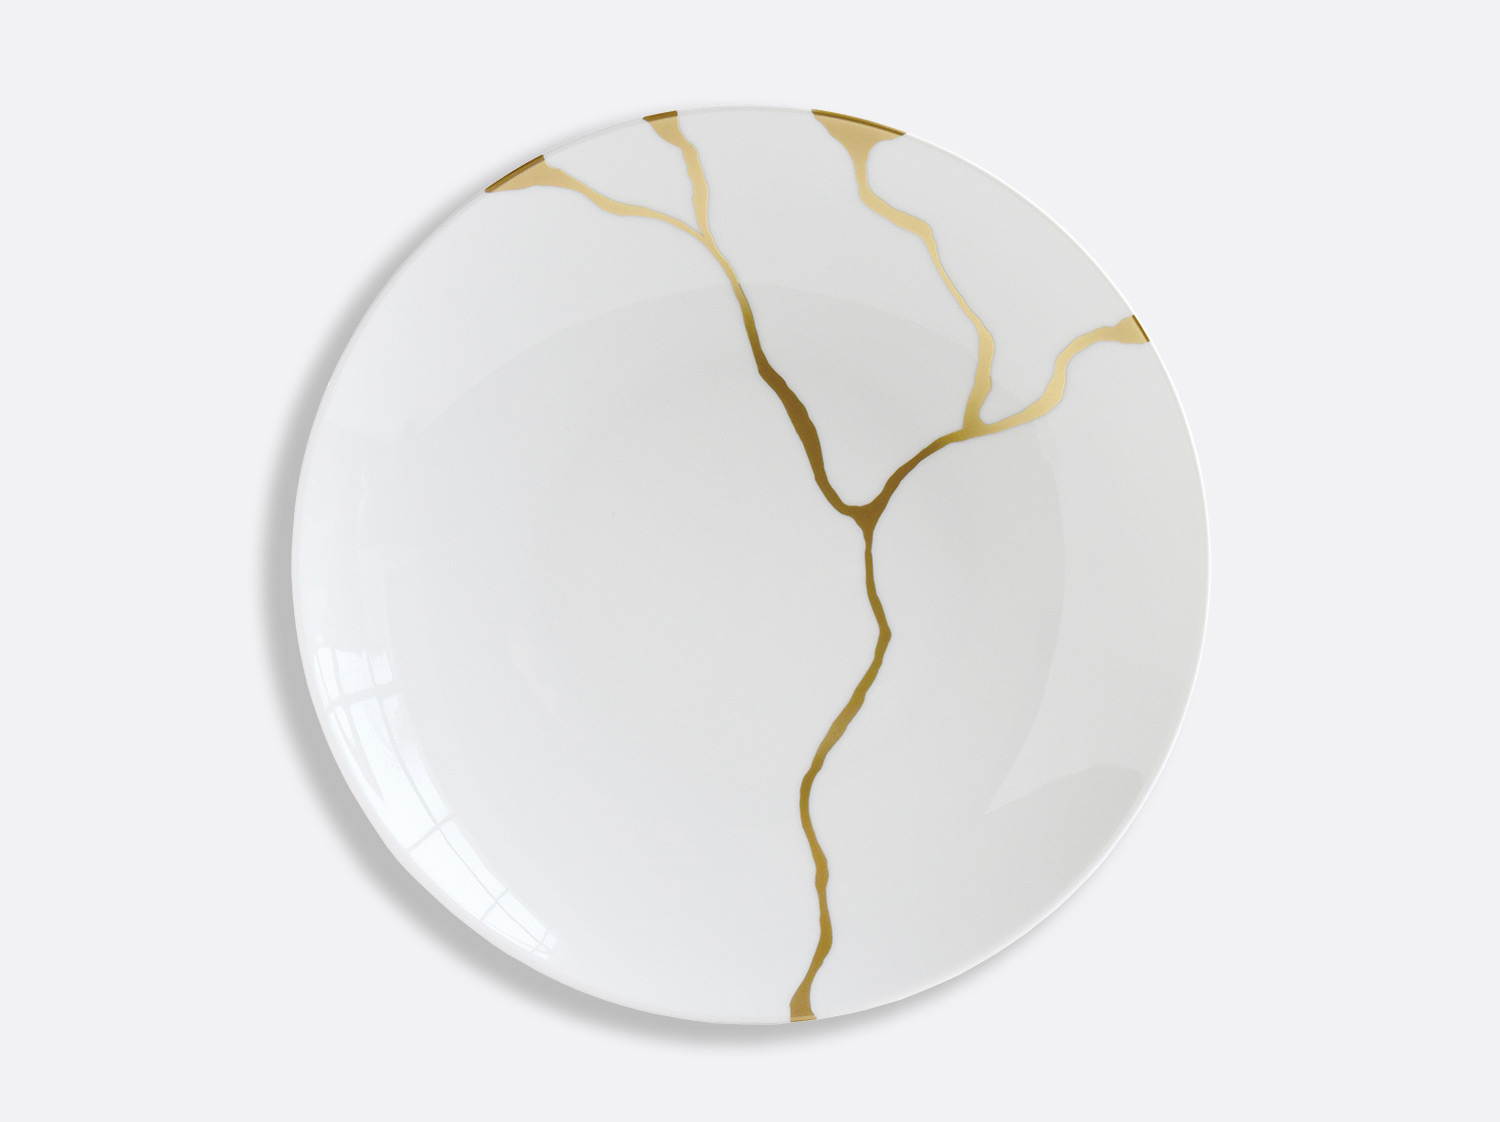 Plat rond creux 29 cm en porcelaine de la collection Kintsugi Bernardaud